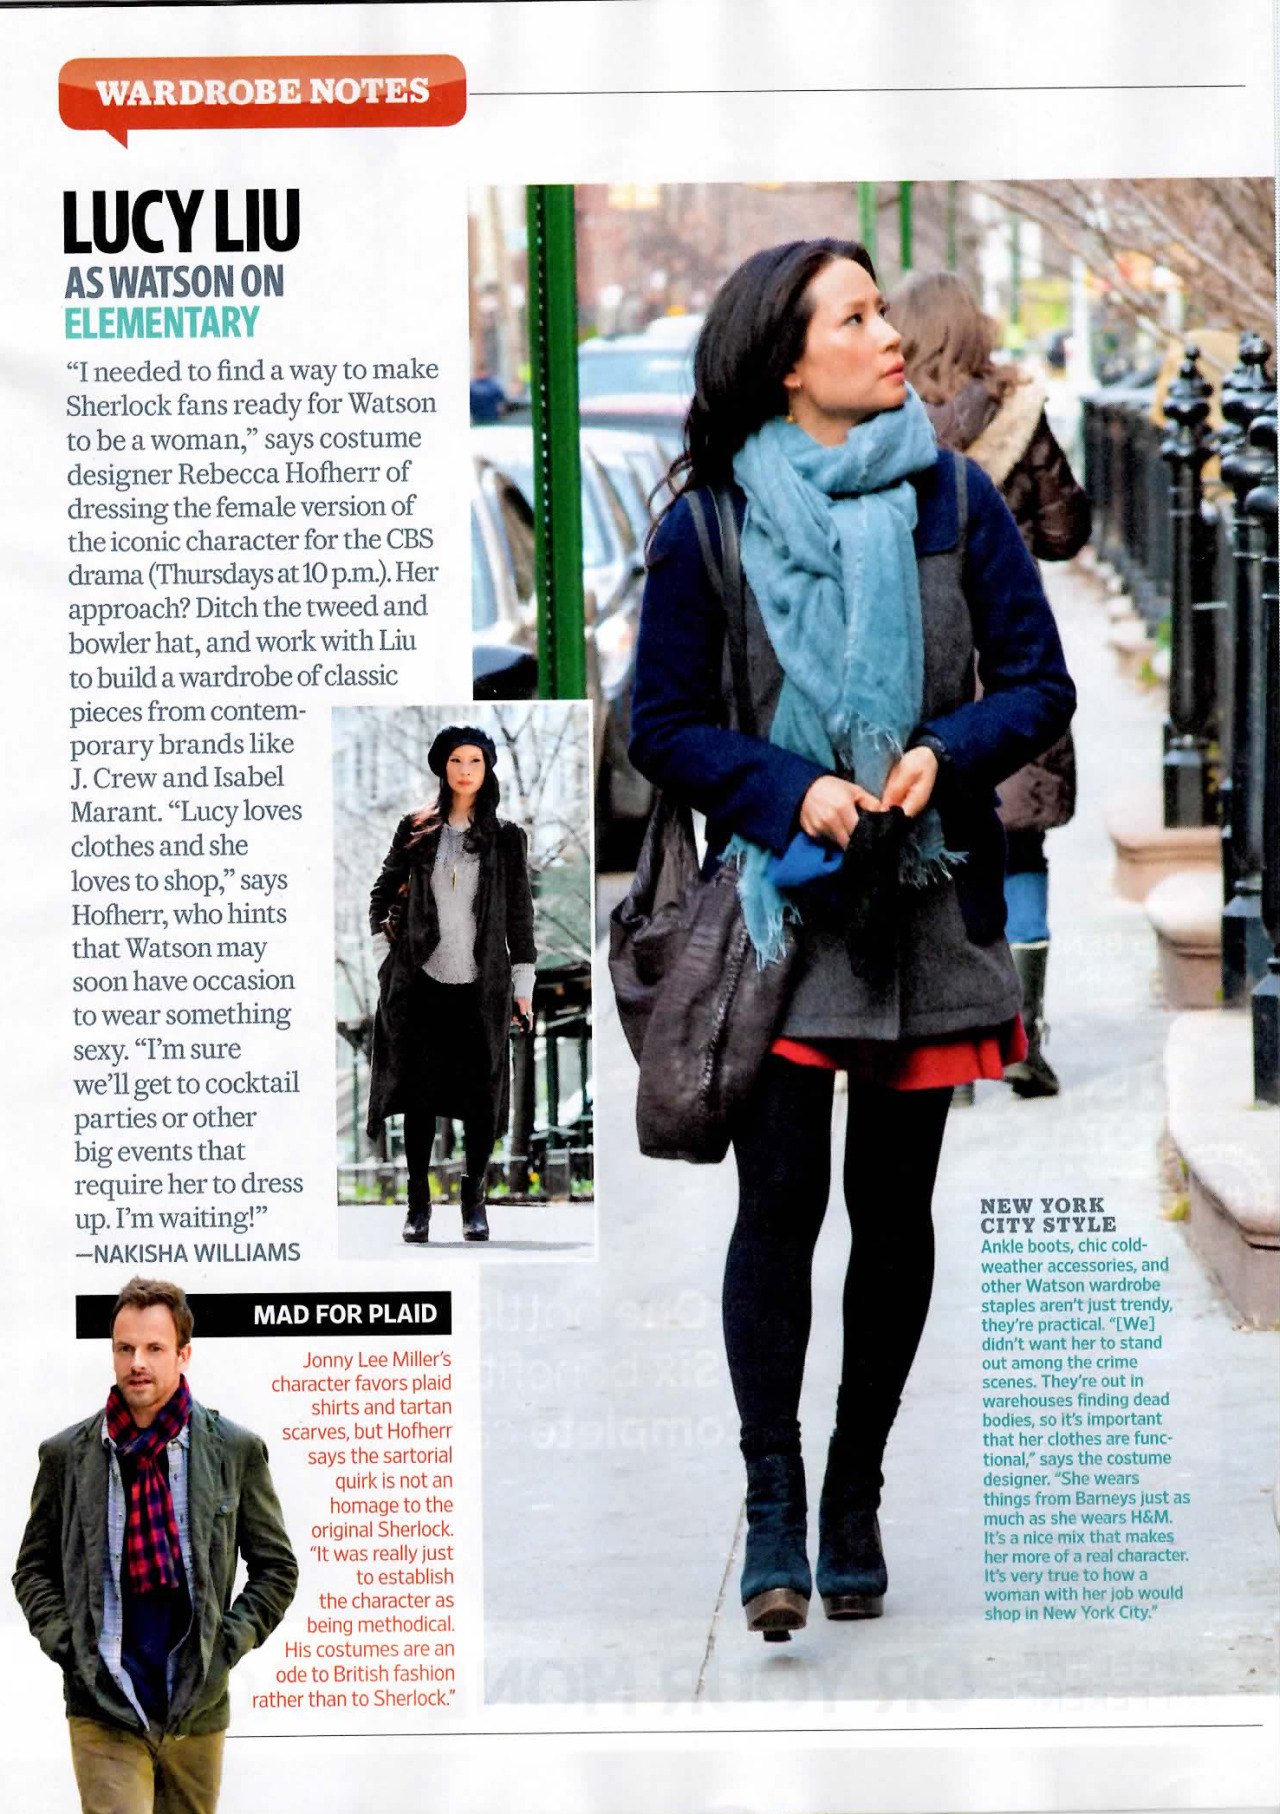 Entertainment Weekly - Feb. 15, 2013